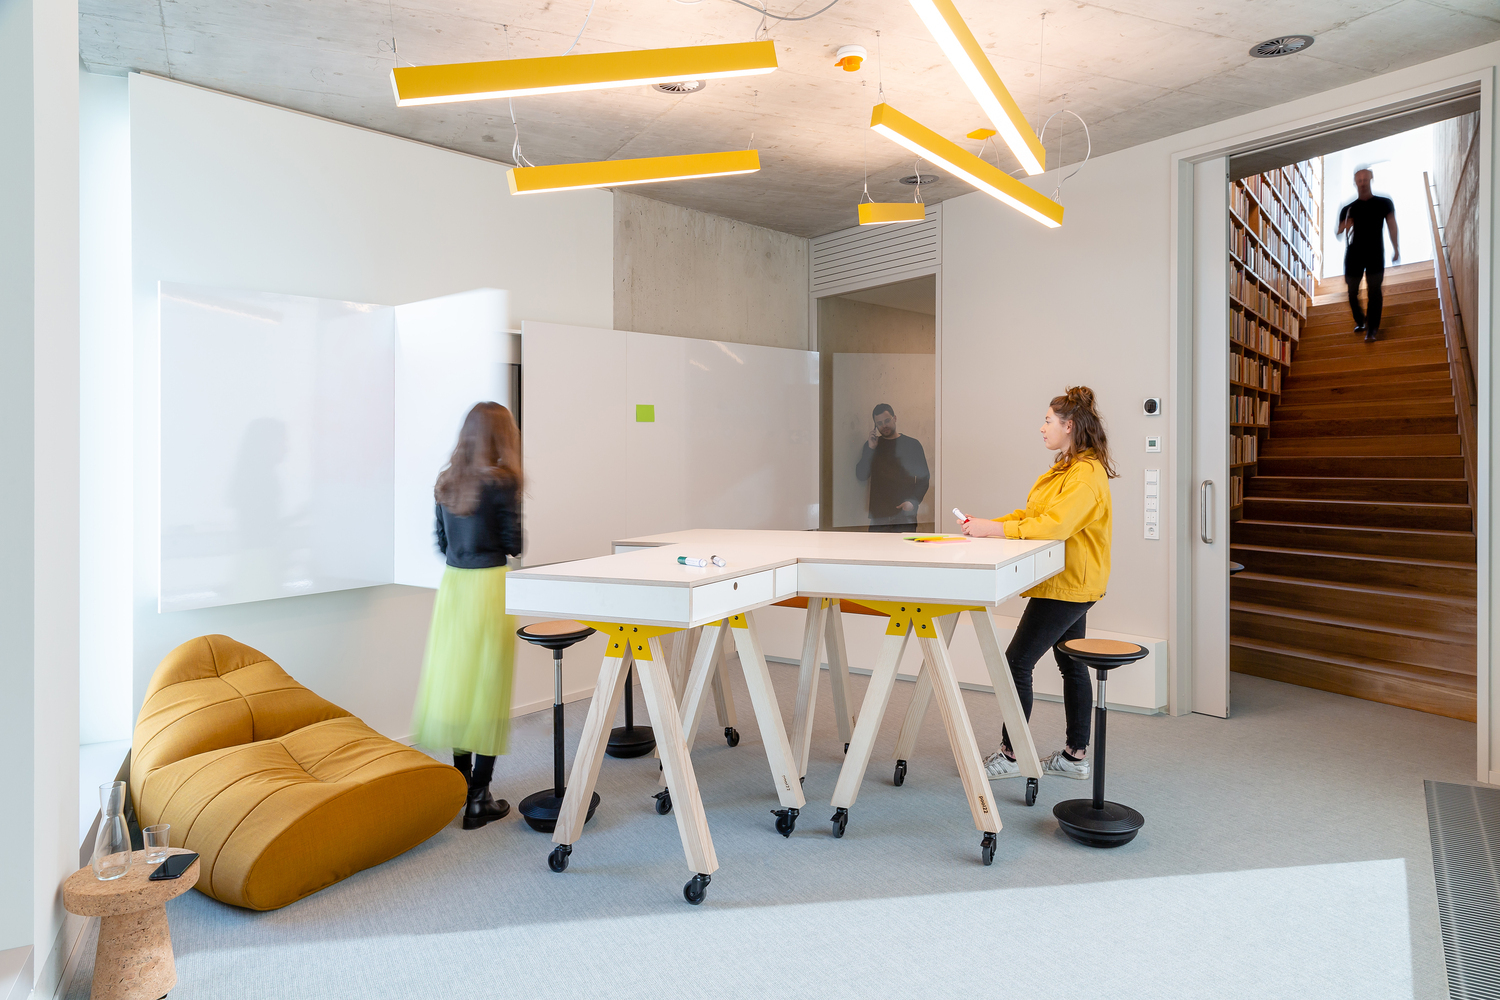 Why Should We Design Spaces with Furniture on Wheels?